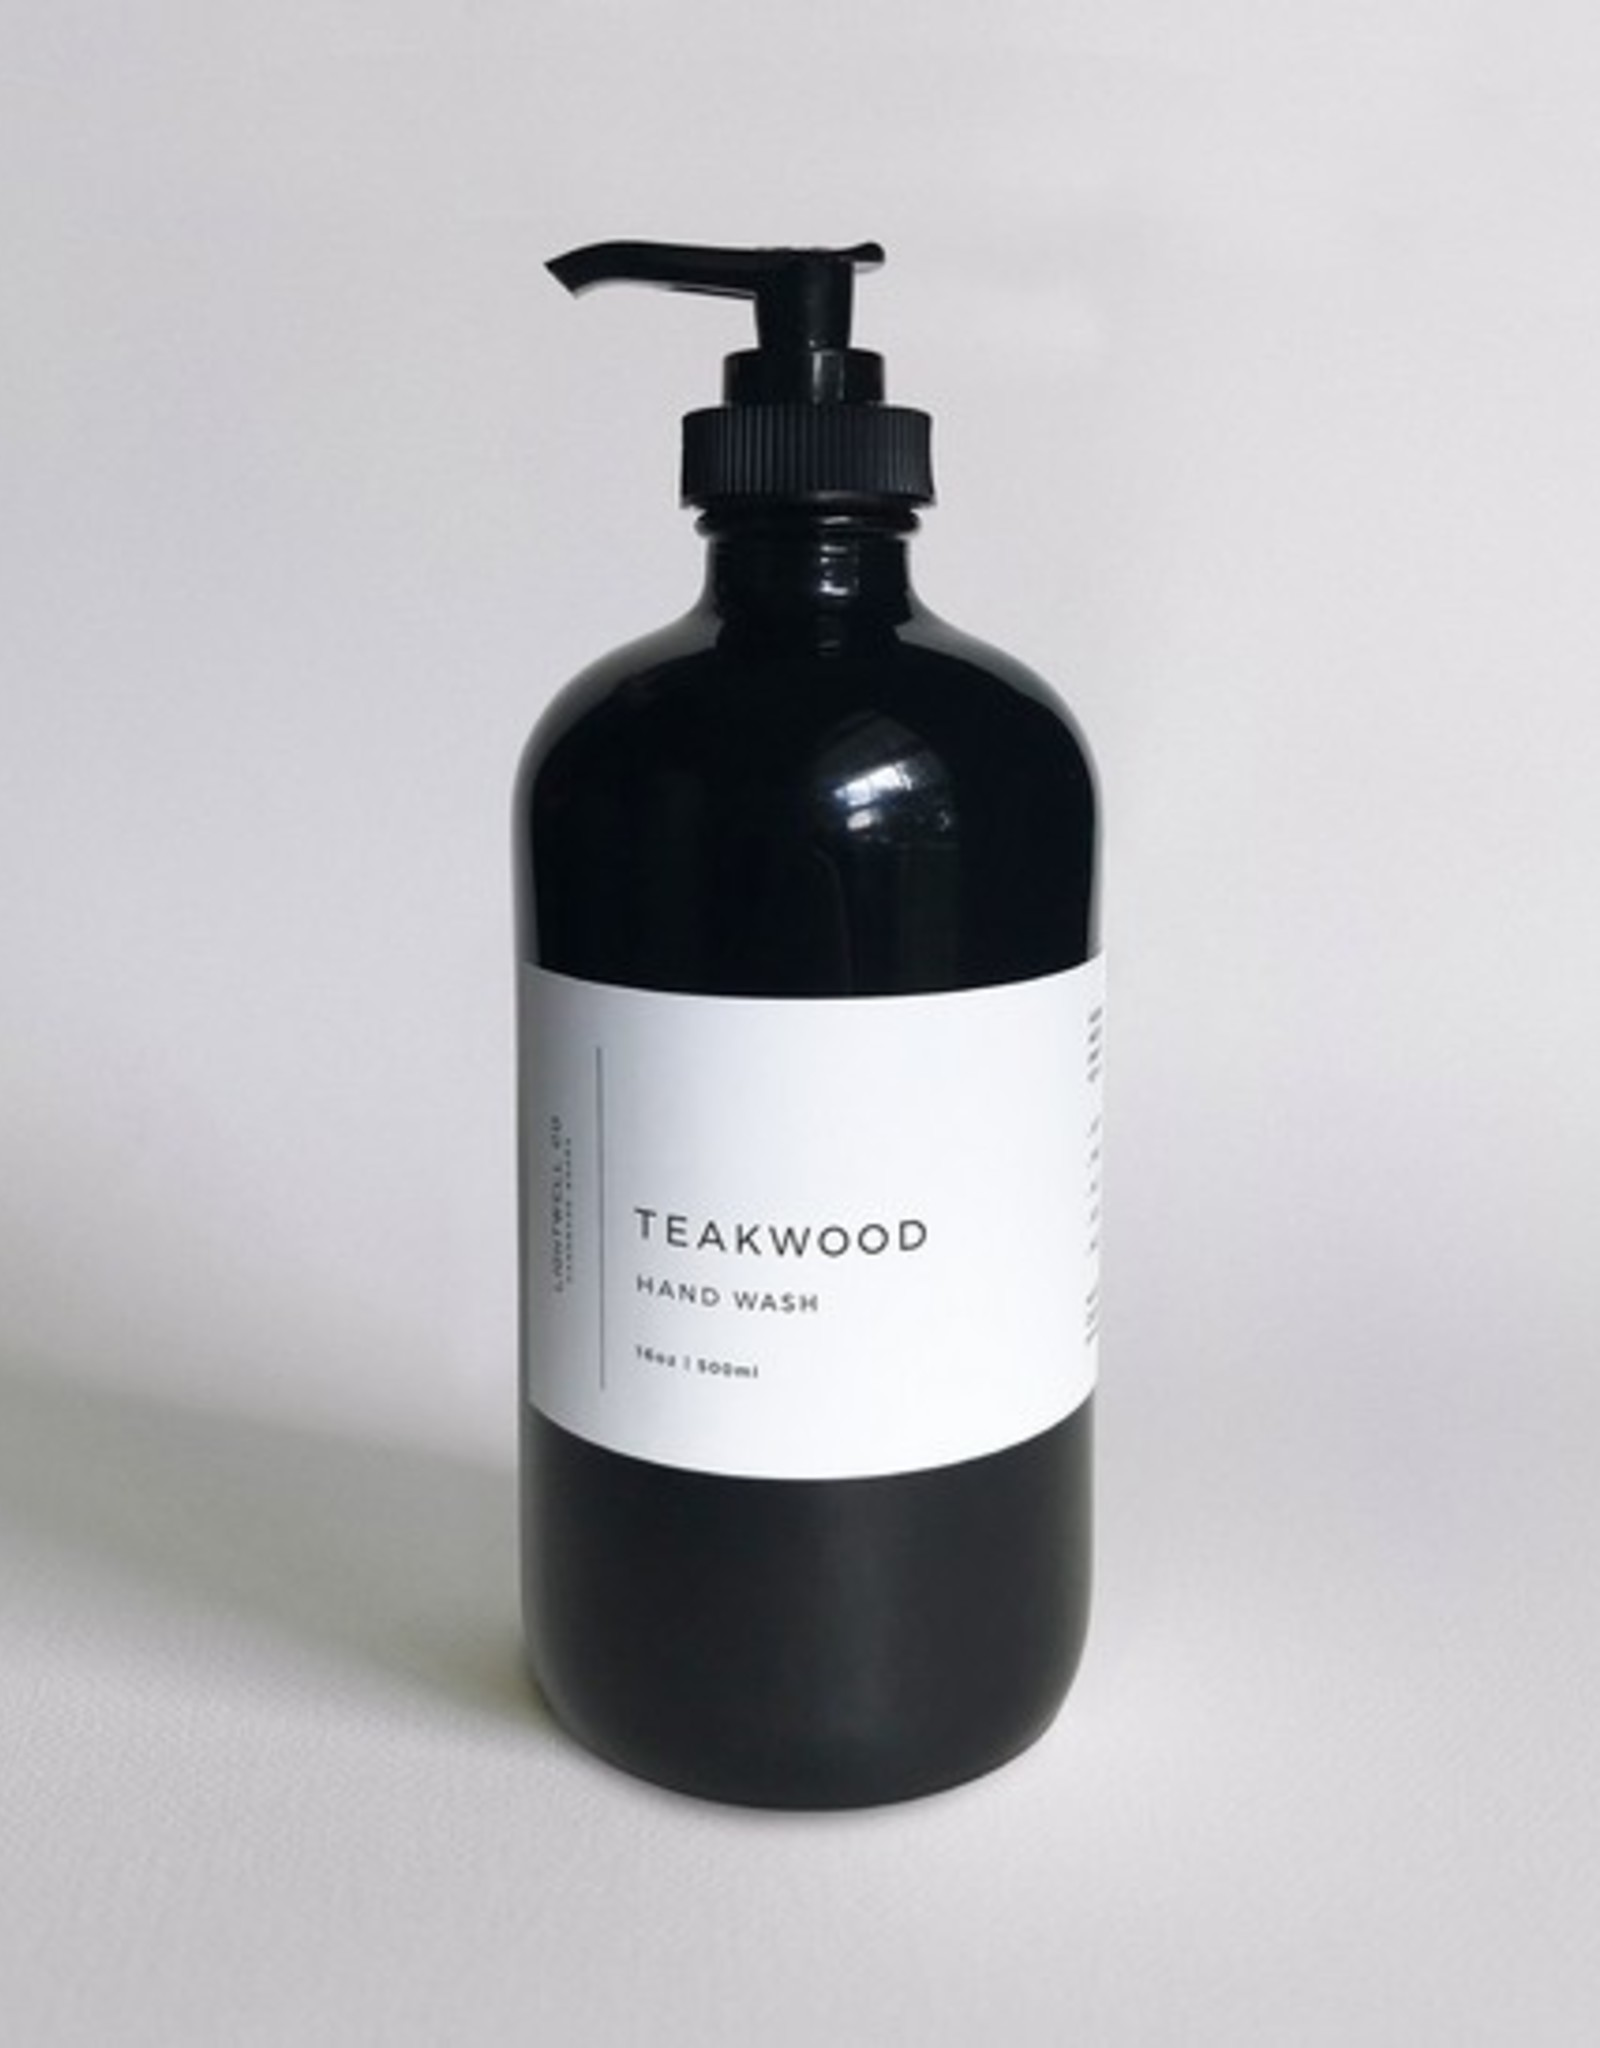 Teakwood Hand Wash